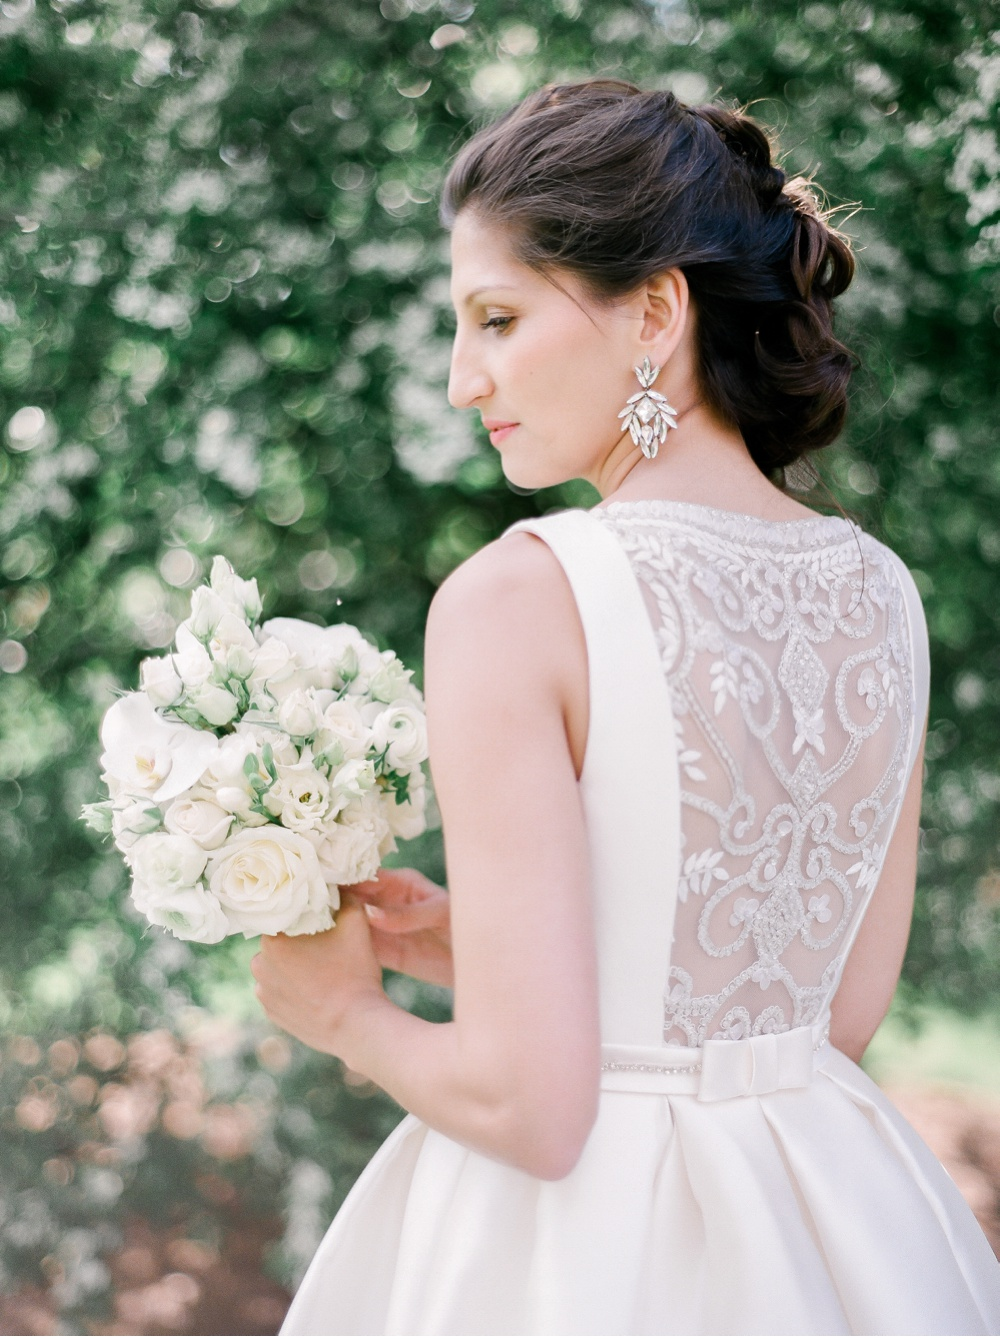 Destination_Paris_Wedding_Photographer©MadalinaSheldon_0047.jpg